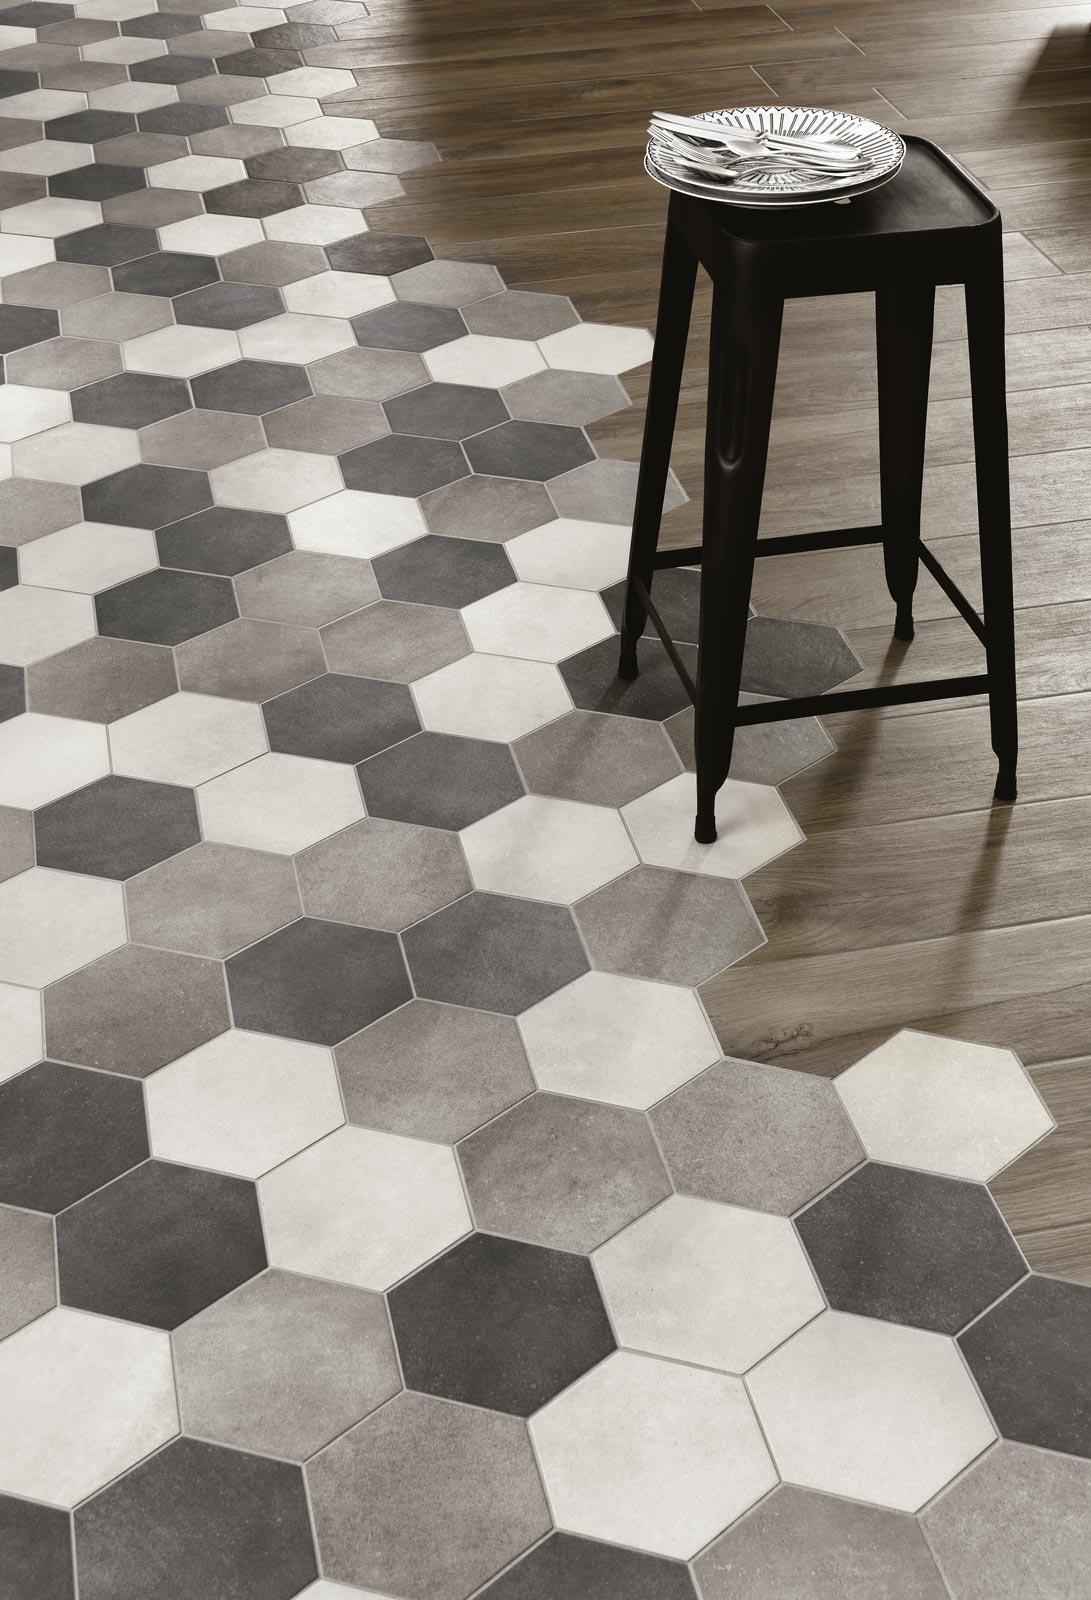 Imitations carreaux ciments lmcs la maison du carrelage for Maison du carrelage